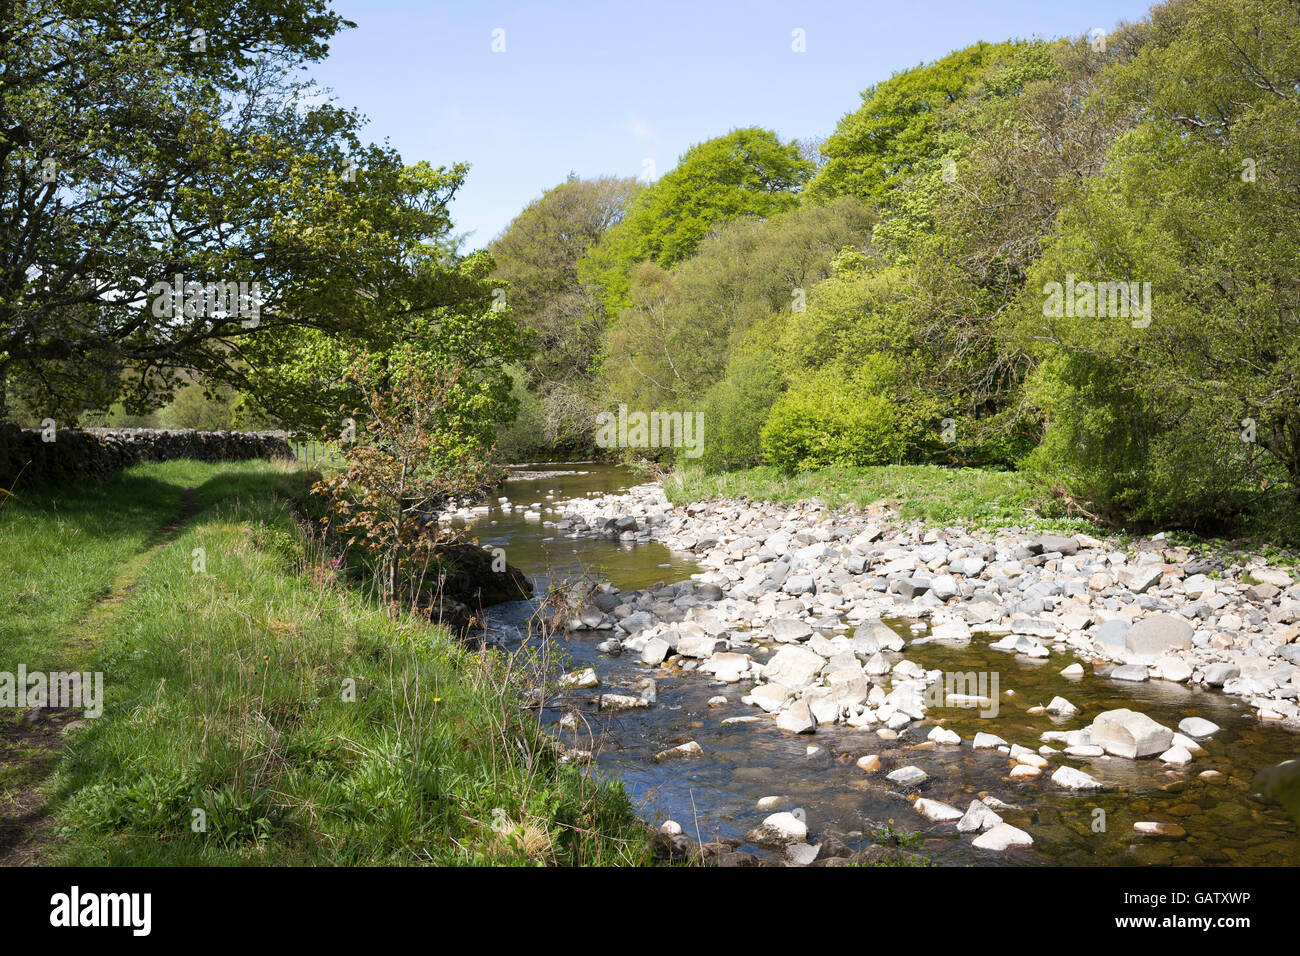 Cobbles at rest in the upper reaches of the River South Tyne, Garrigill, Cumbria, England, UK - Stock Image